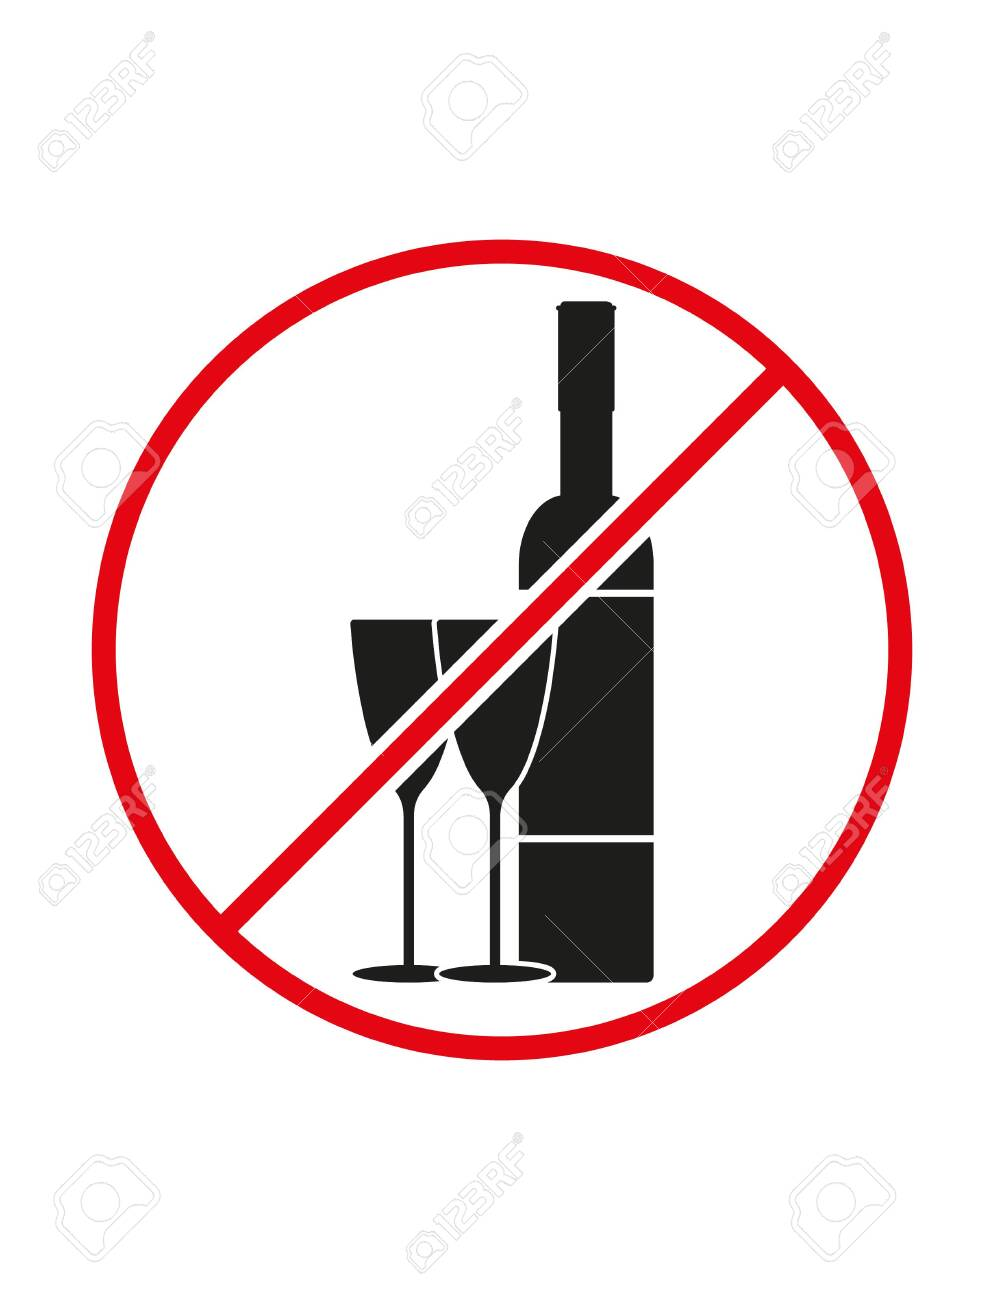 Alcohol not allowed black white red vector sign ban symbol - 134860630